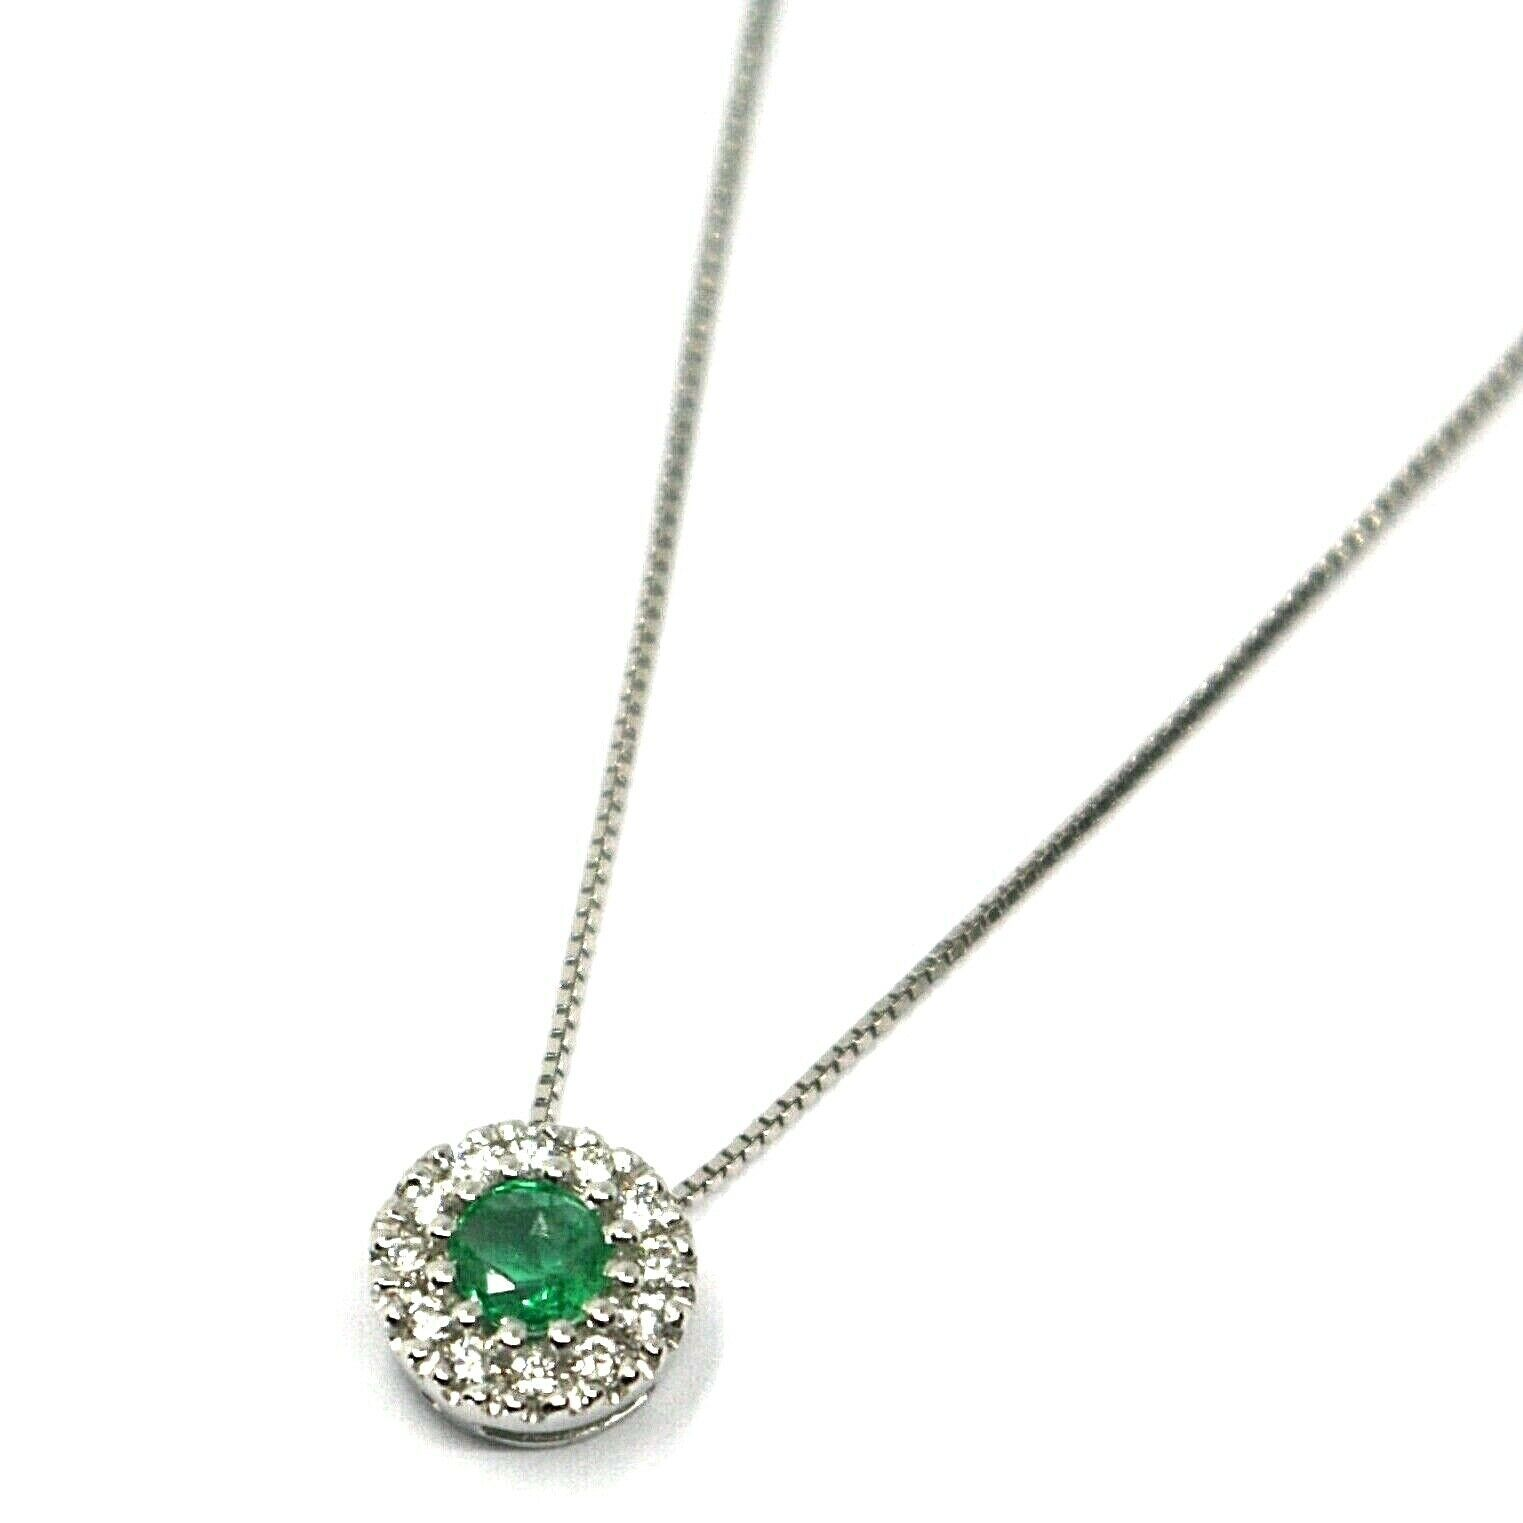 18K WHITE GOLD NECKLACE, FLOWER PENDANT, ROUND EMERALD WITH DIAMONDS FRAME